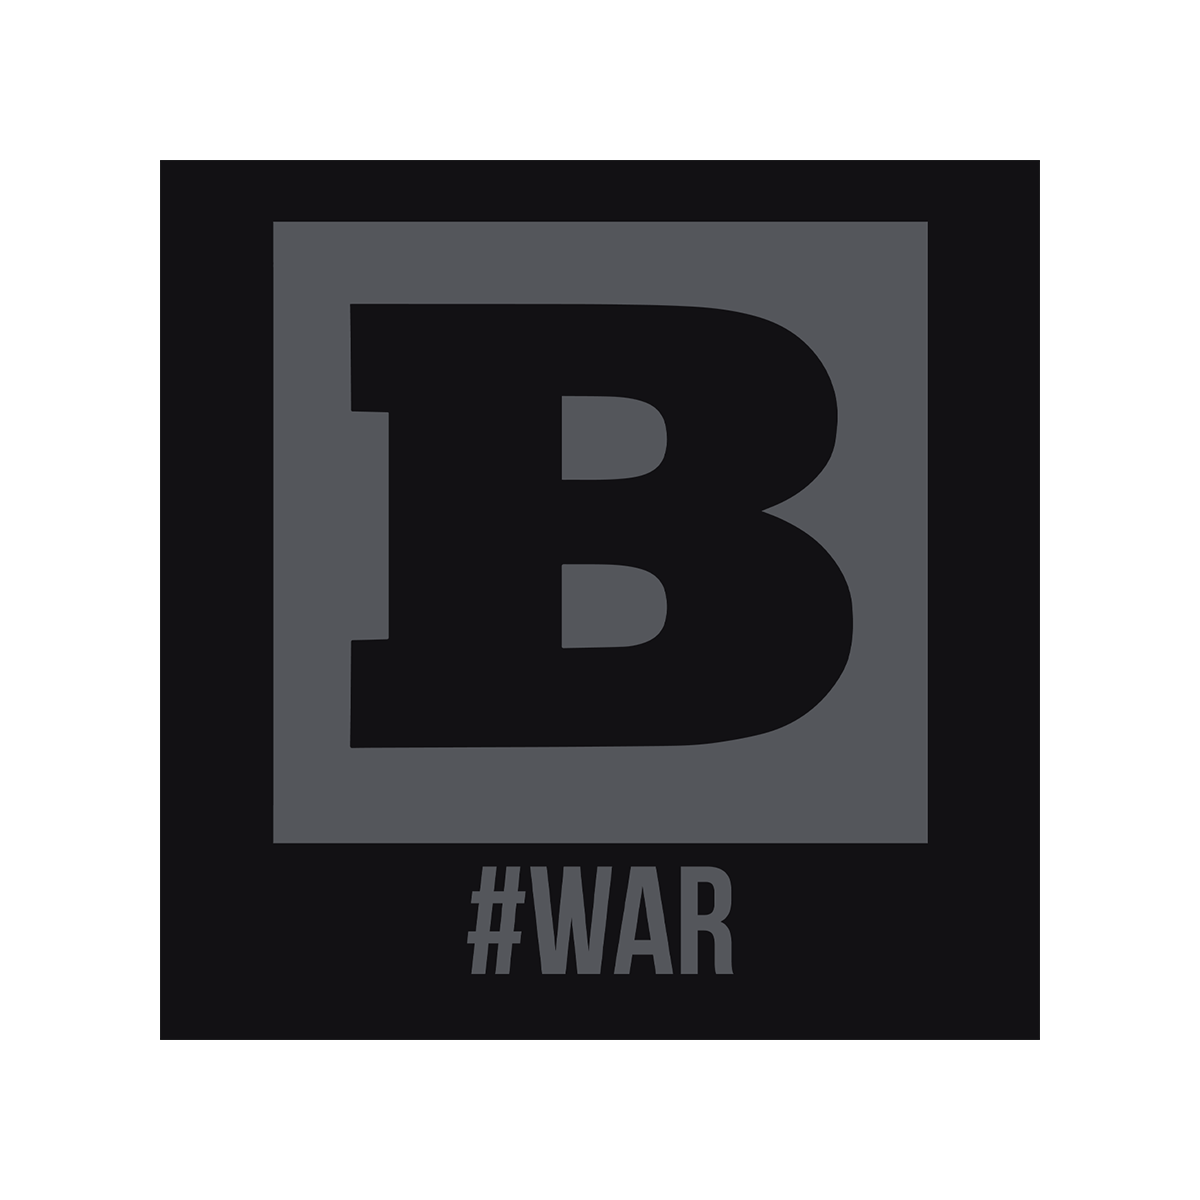 Breitbart #WAR Women's T-Shirt - Black